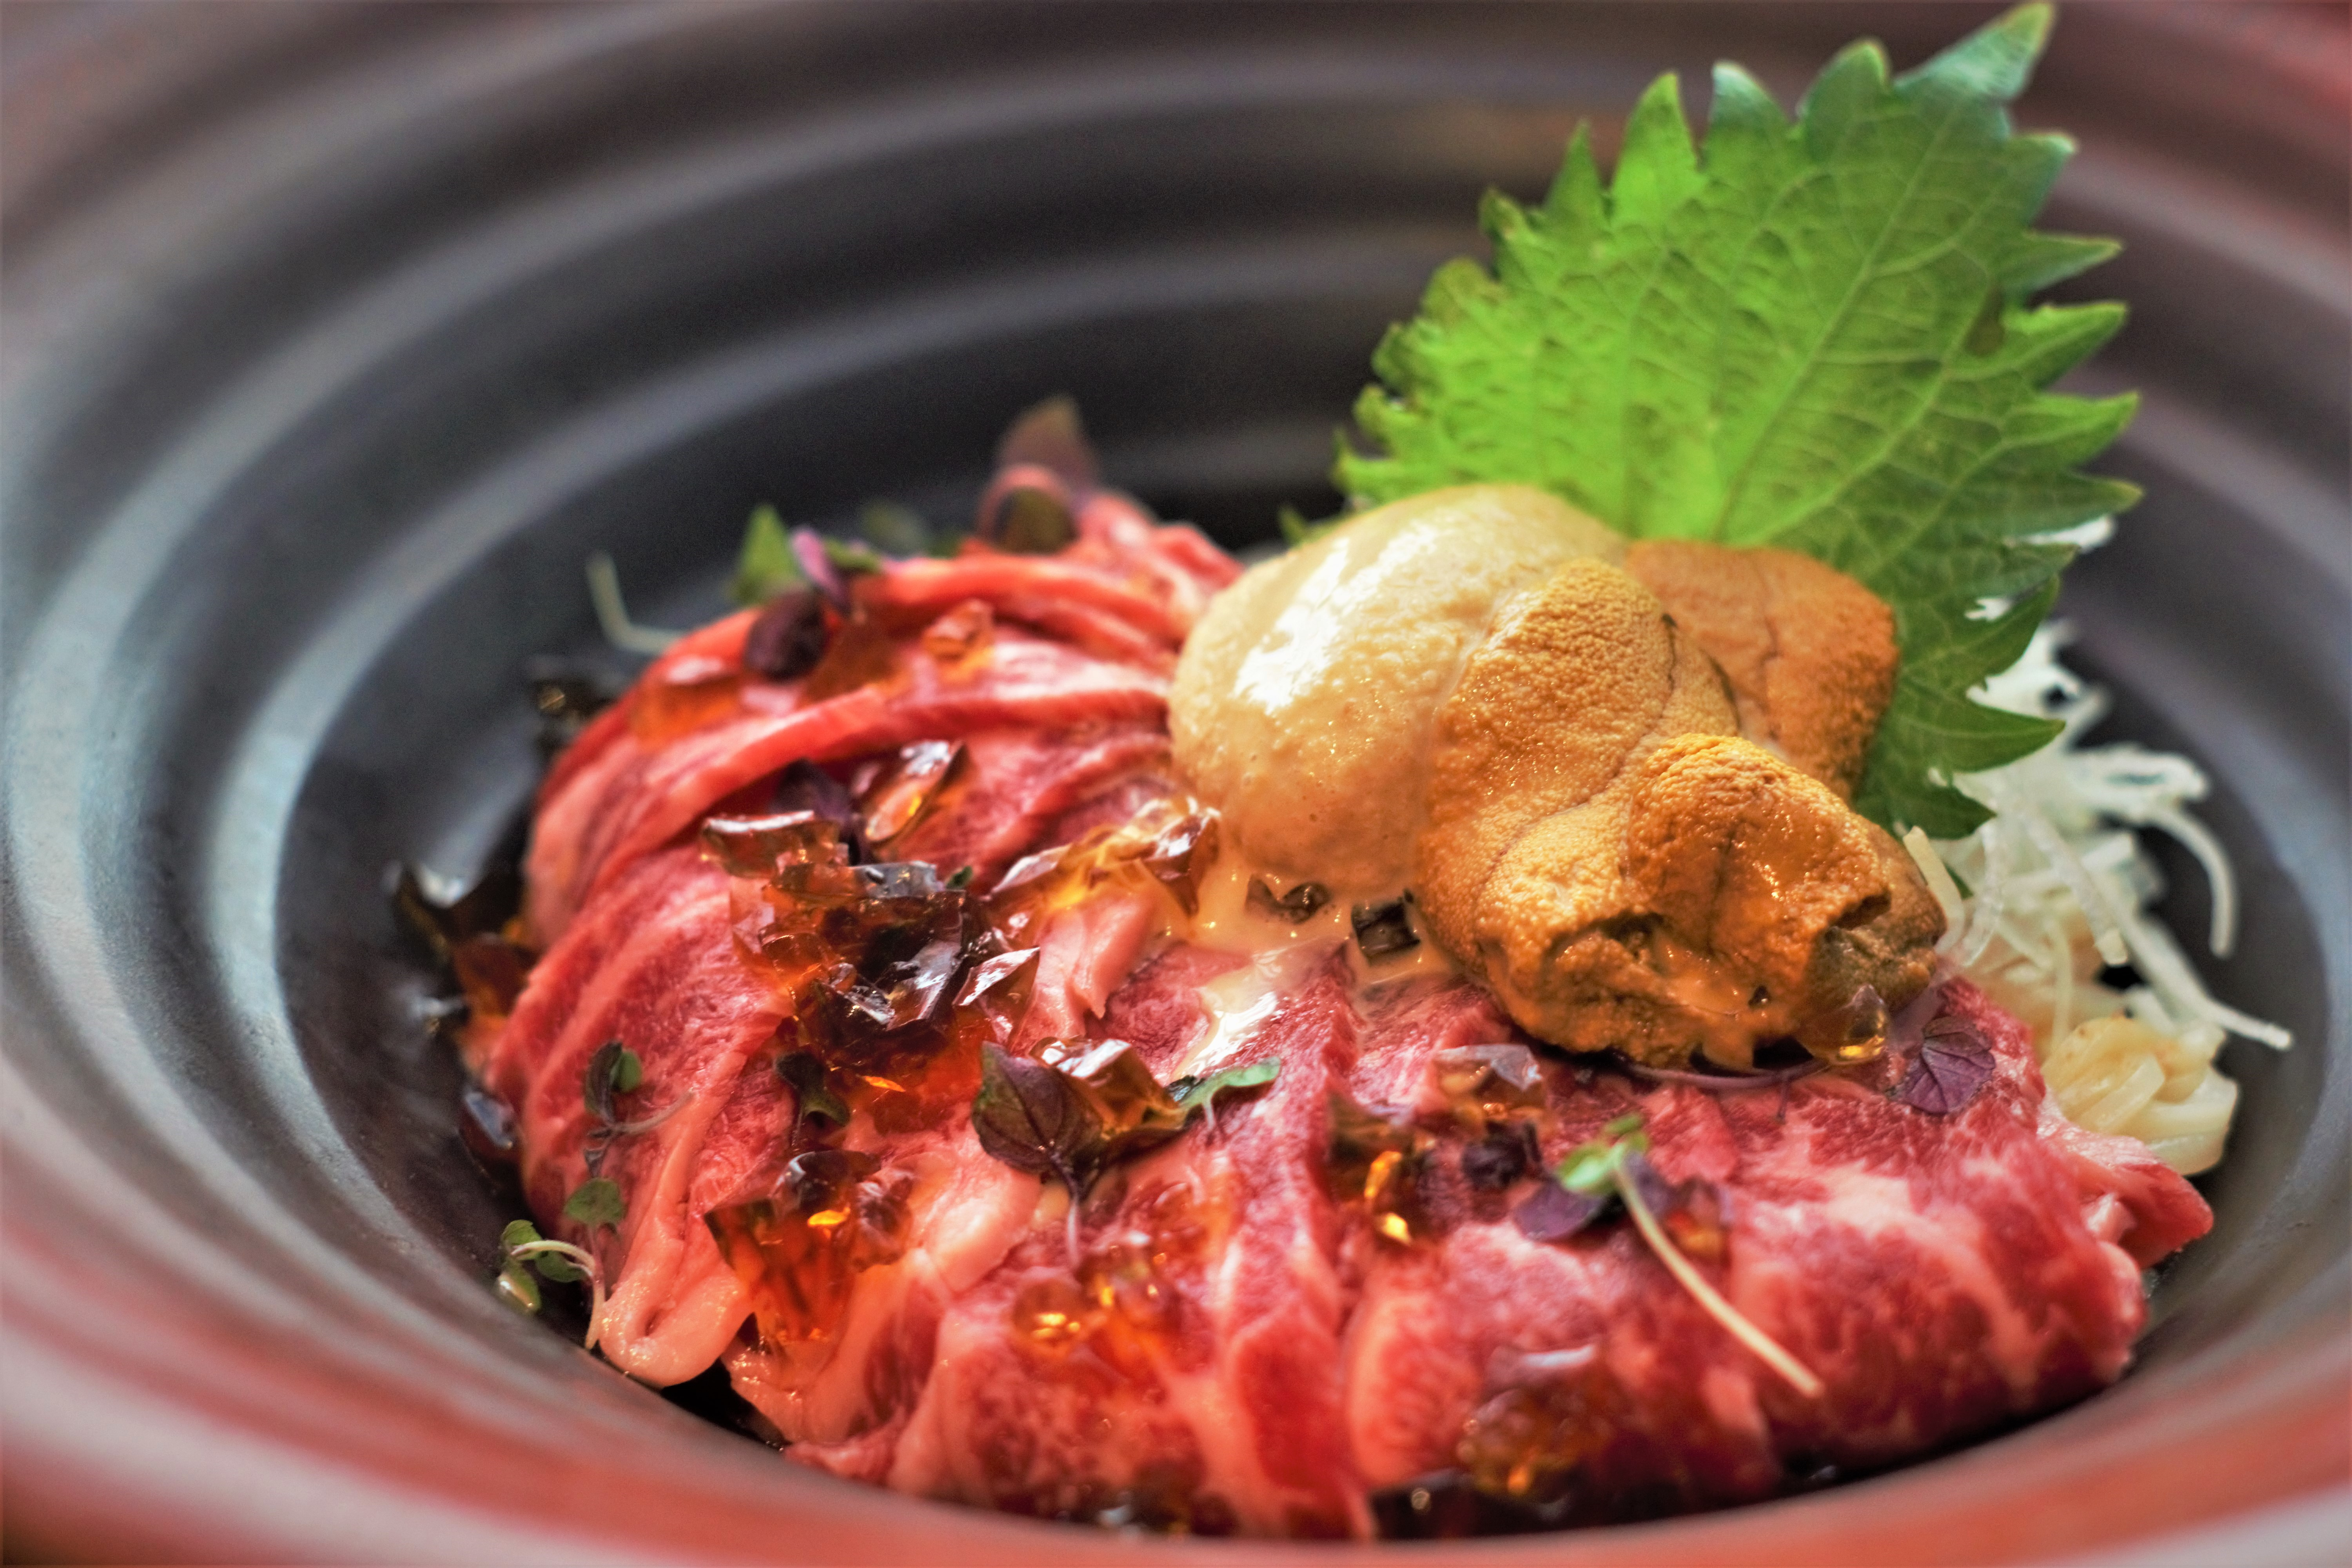 This exclusive dish from the Boston location of Tsurutontan features thin, rare strips of wagyu with udon noodles peeking out underneath and a big dollop of orange uni on top.